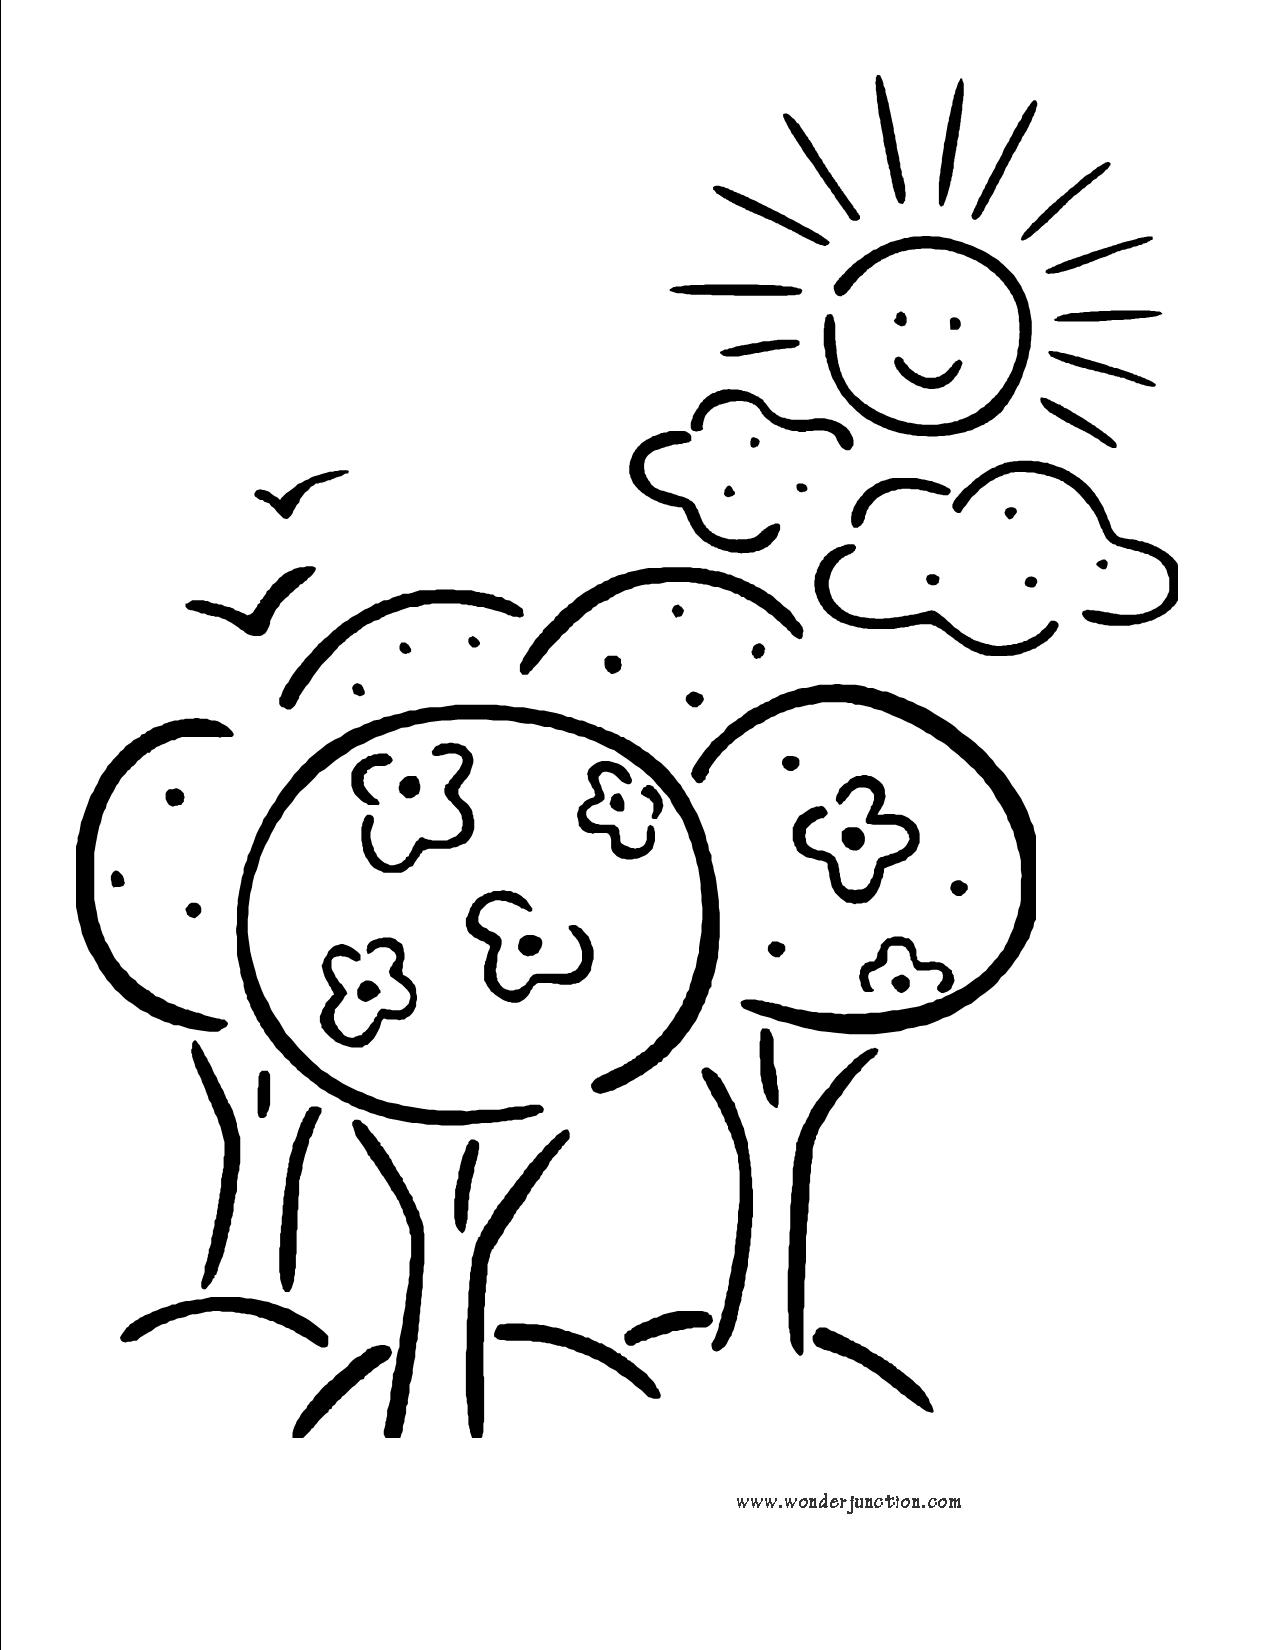 Line Drawing Sunny Day : Sunny day clip art cliparts